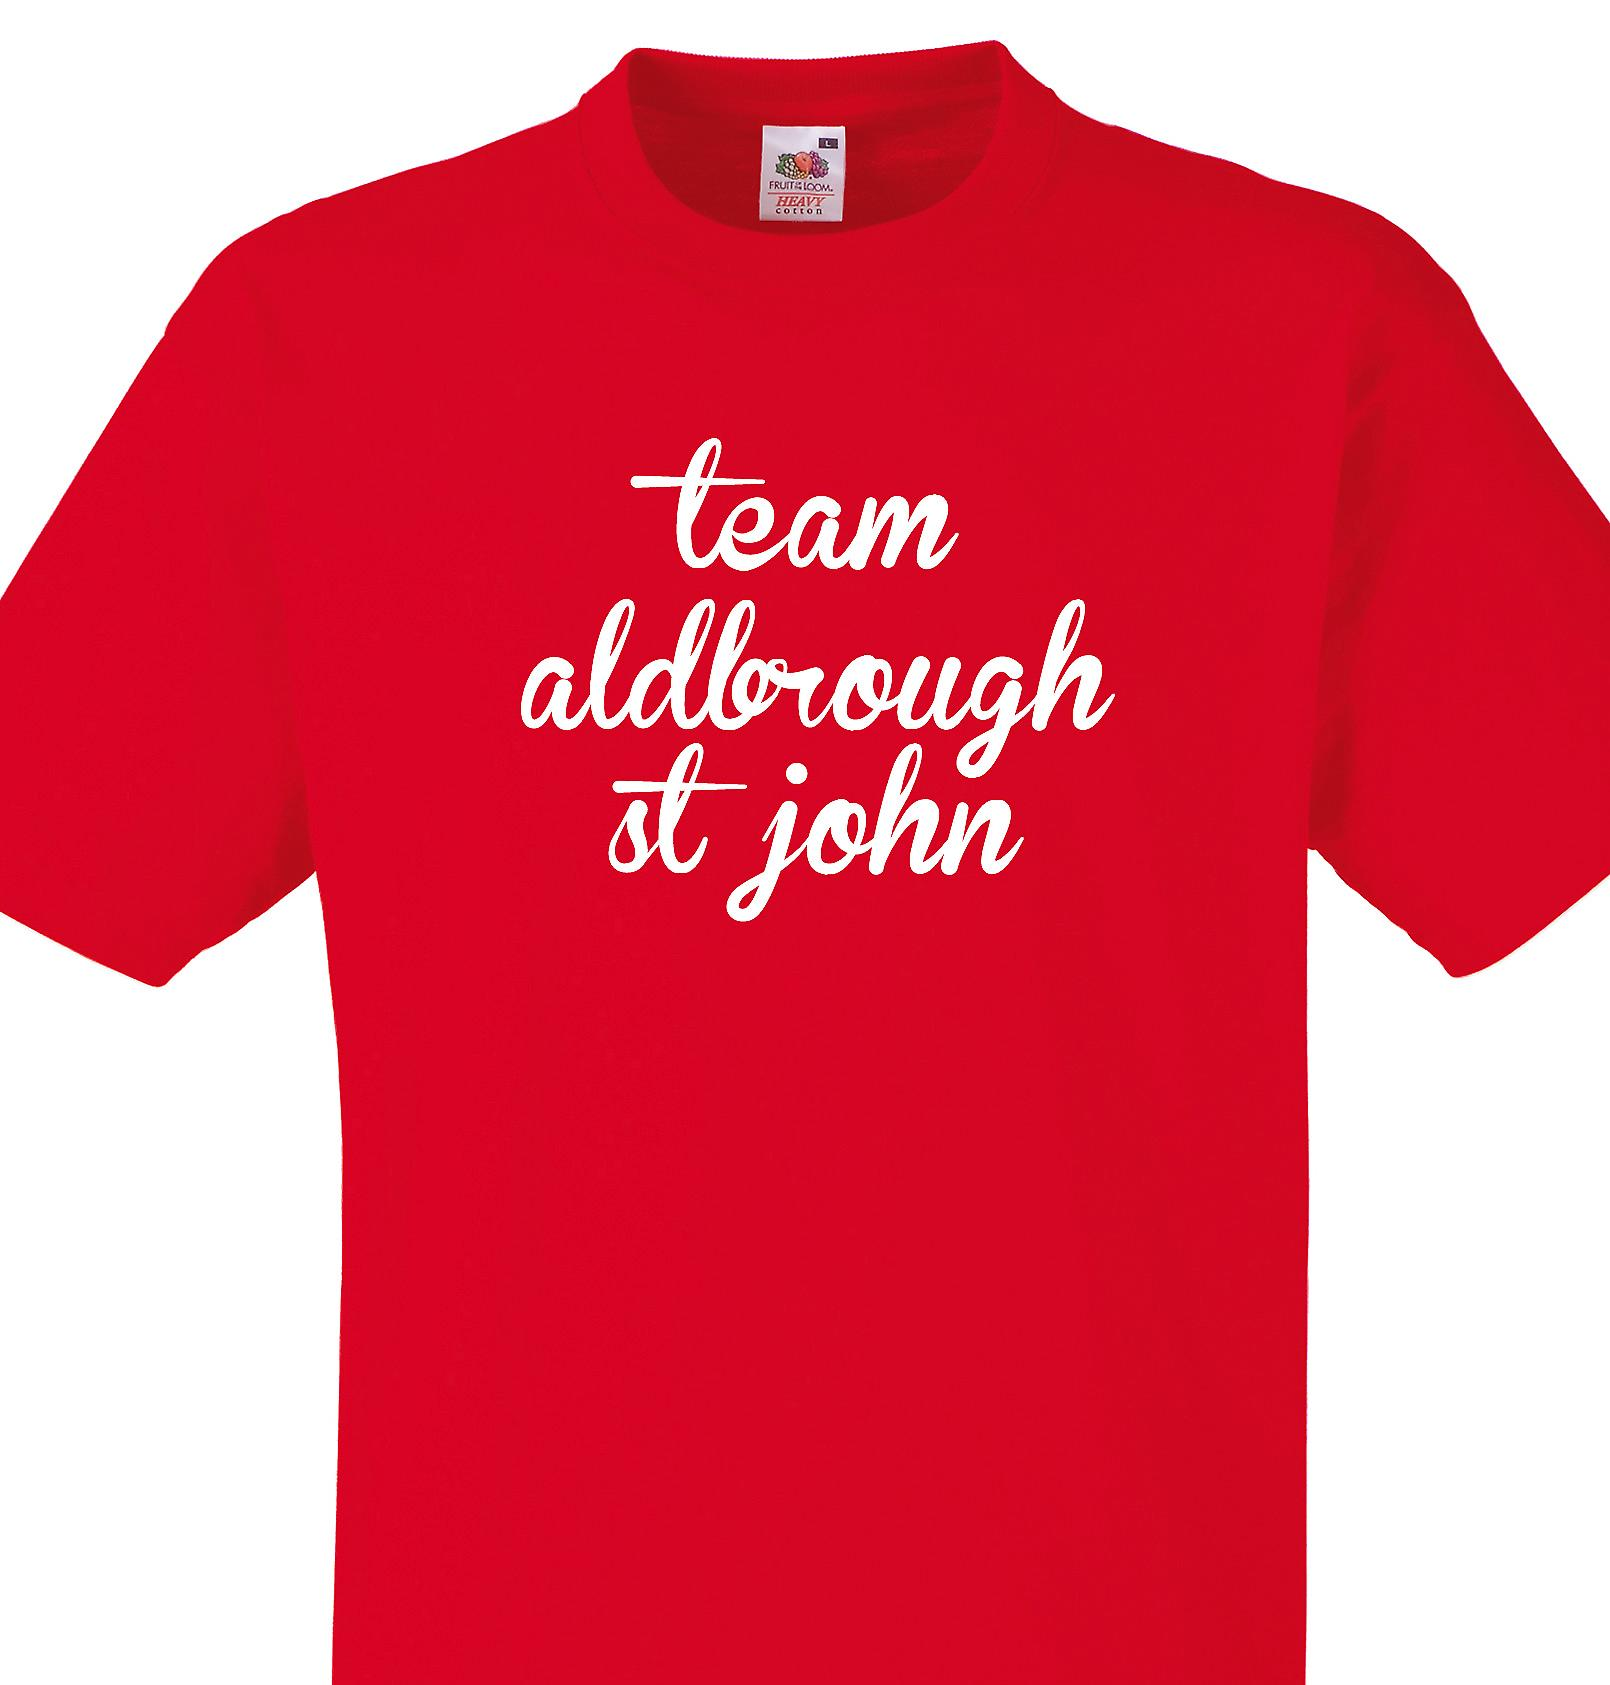 Team Aldbrough st john Red T shirt